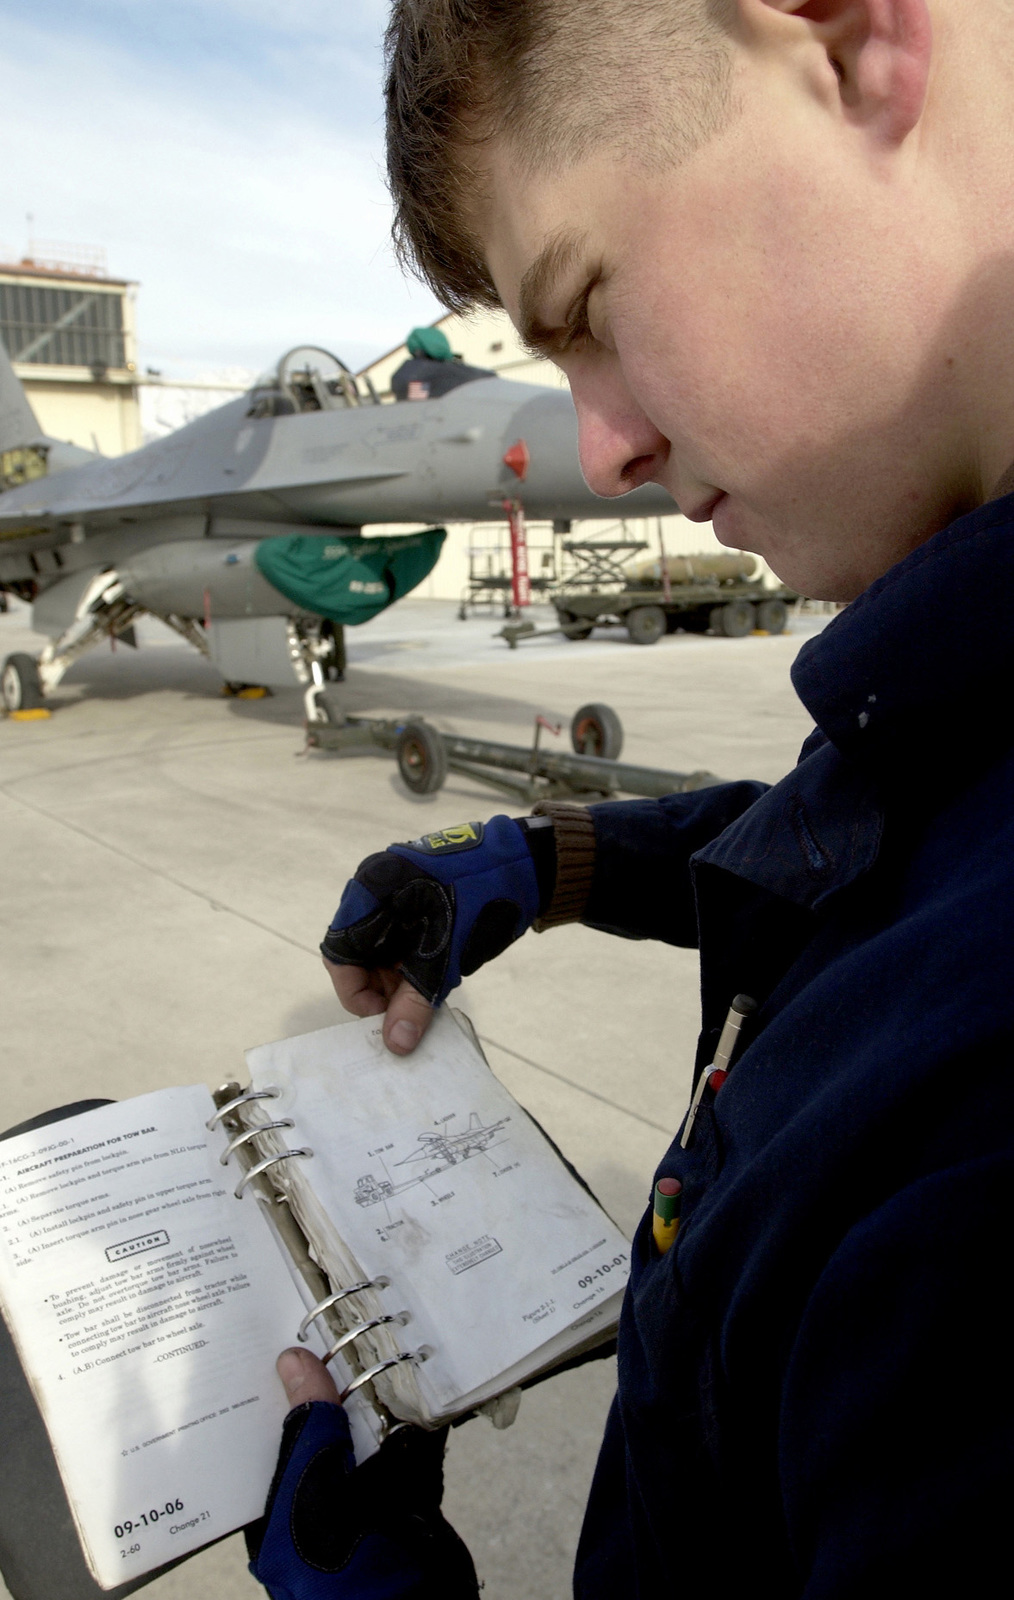 US Air Force (USAF) SENIOR AIRMAN (SRA) Colin George, Crewchief, 31st Maintenance Squadron (MXS), Aviano Air Base (AB), Italy reviews the Technical Order (TO) before members of the F-16 phase team move the aircraft into the hangar to continue the 300-hour phase inspection